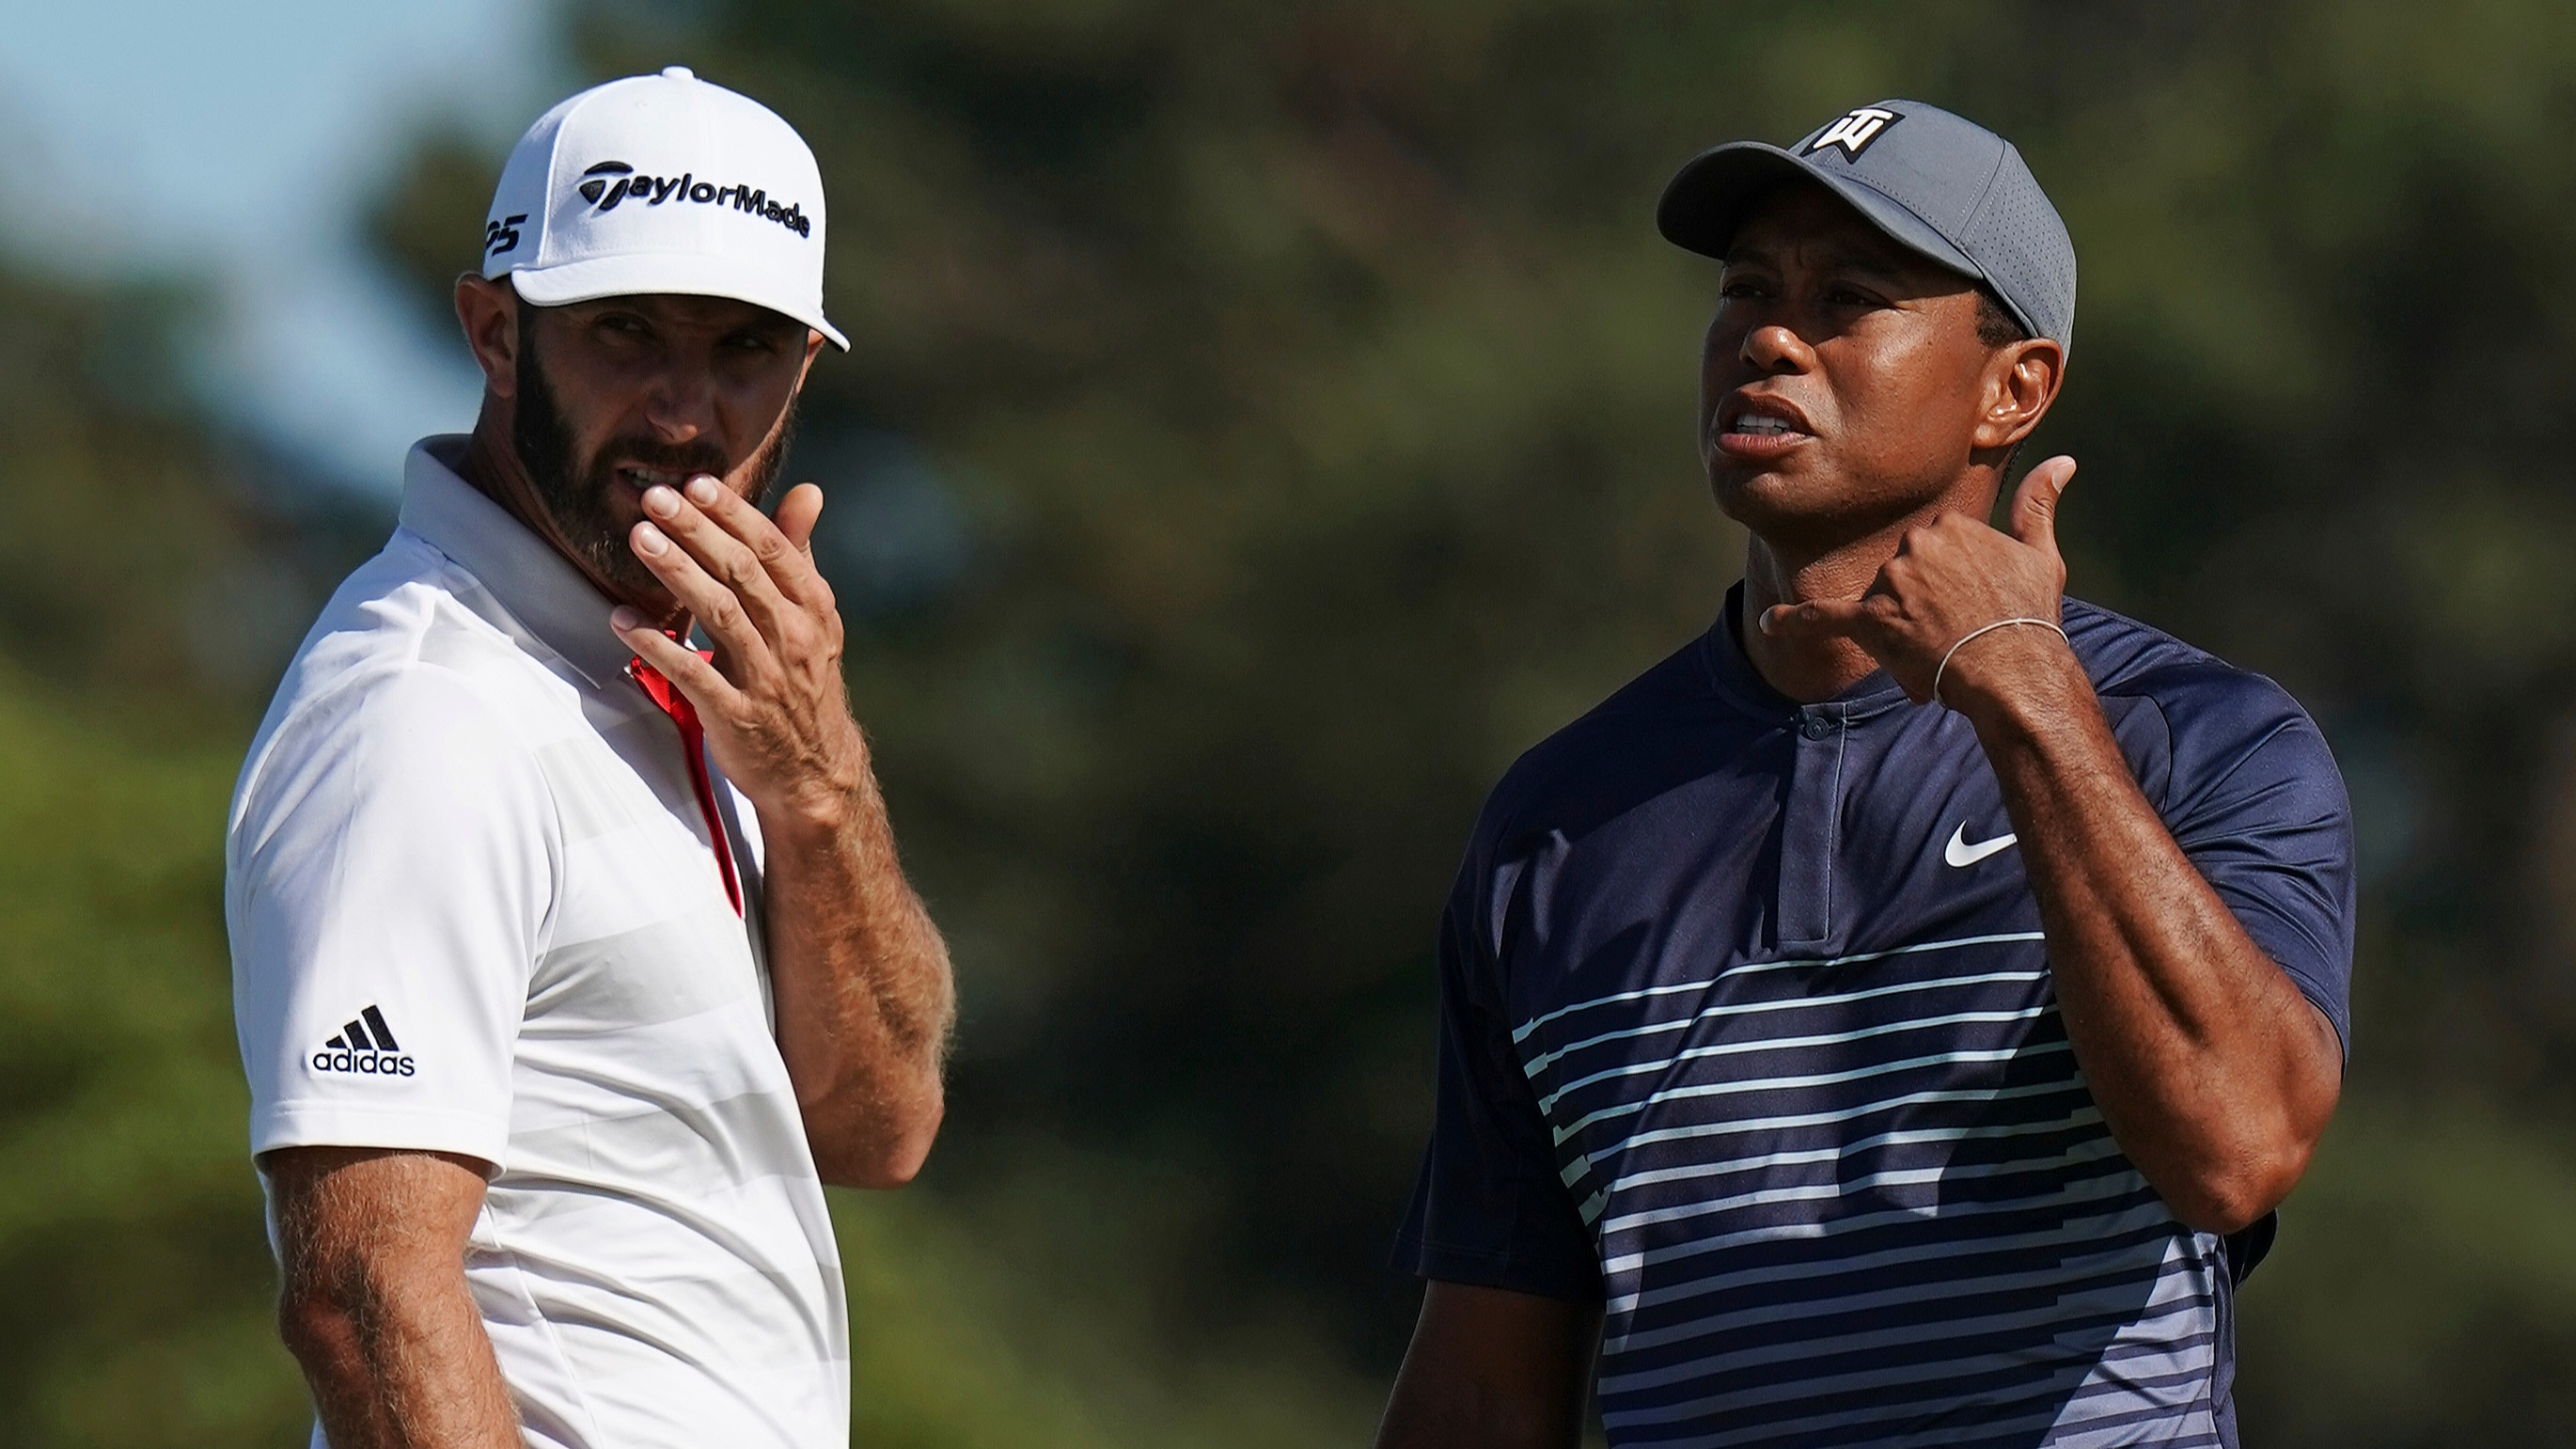 Presidents cup betting odds betting odds explained 7&4